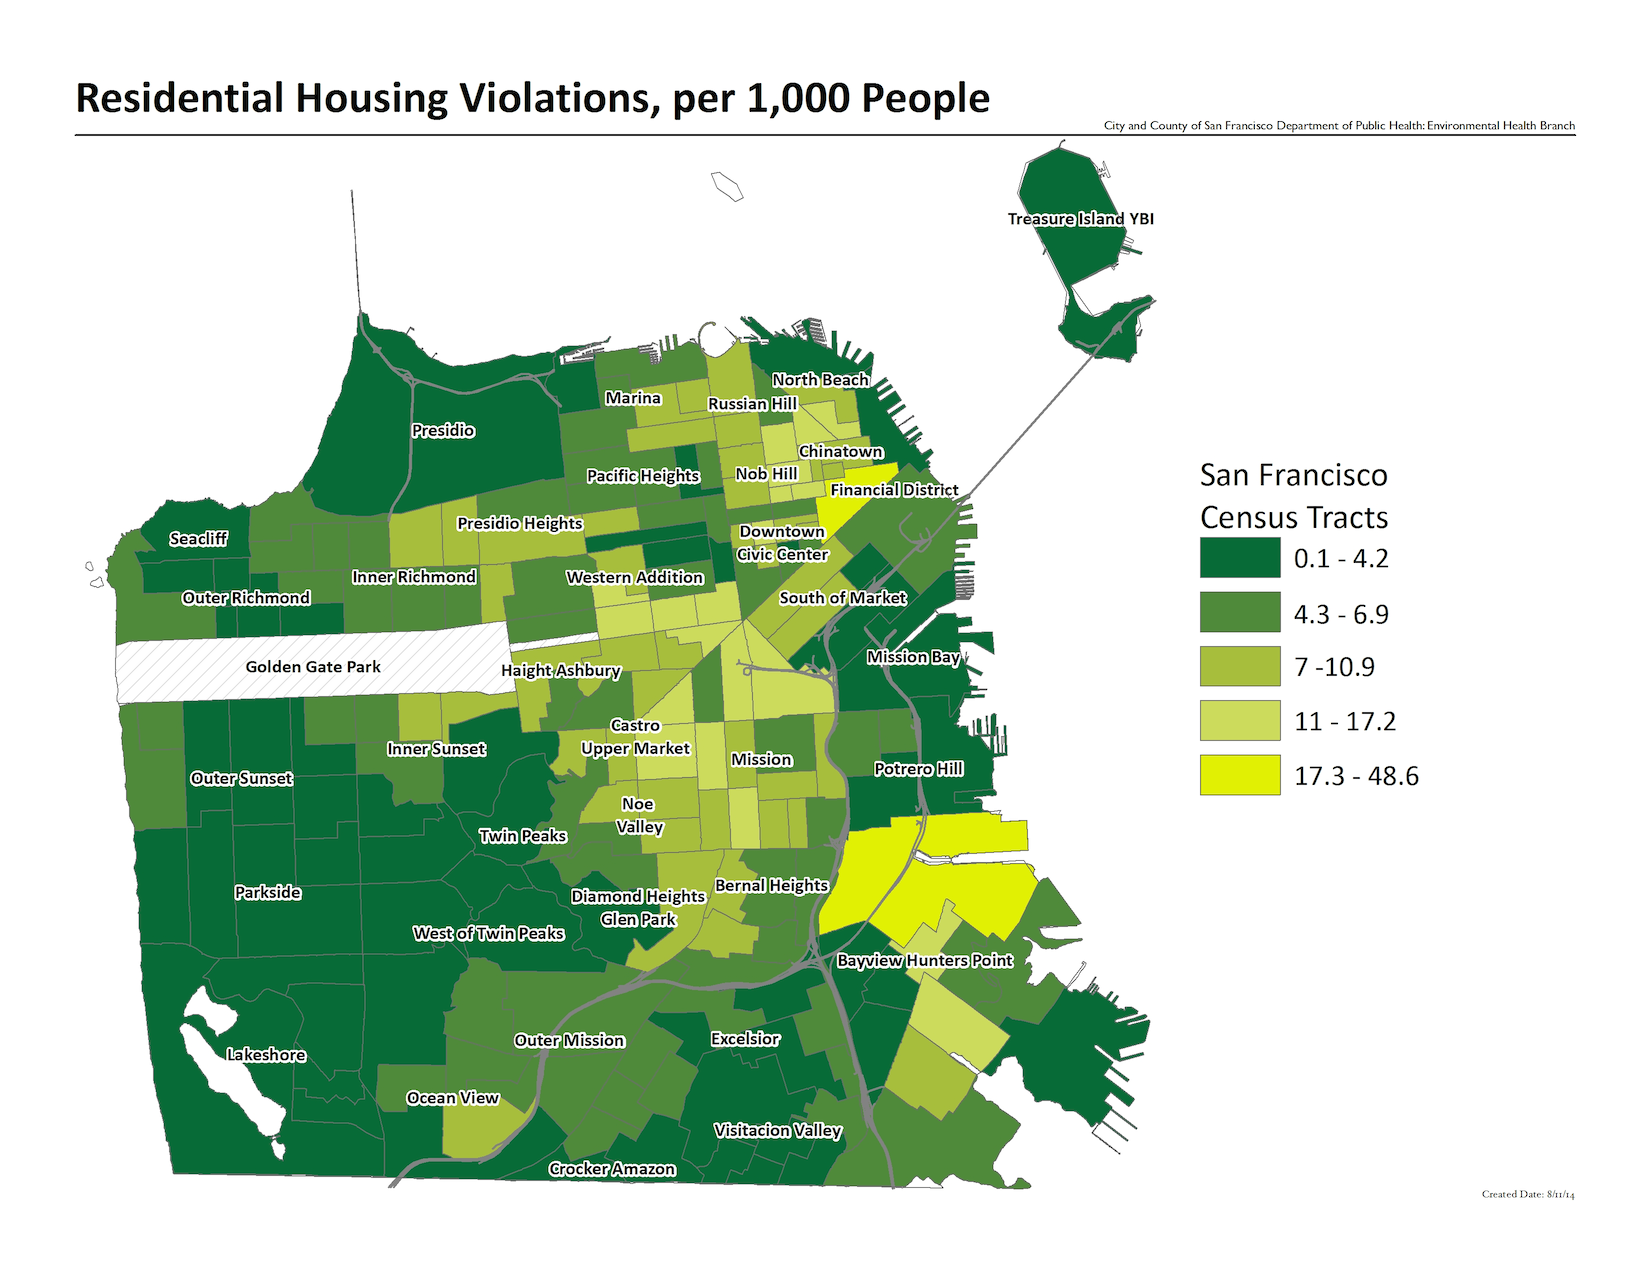 Map of residential housing violations, per 1000 people, by census tract. The neighborhoods with the most violations include the financial district and tenderloin areas.